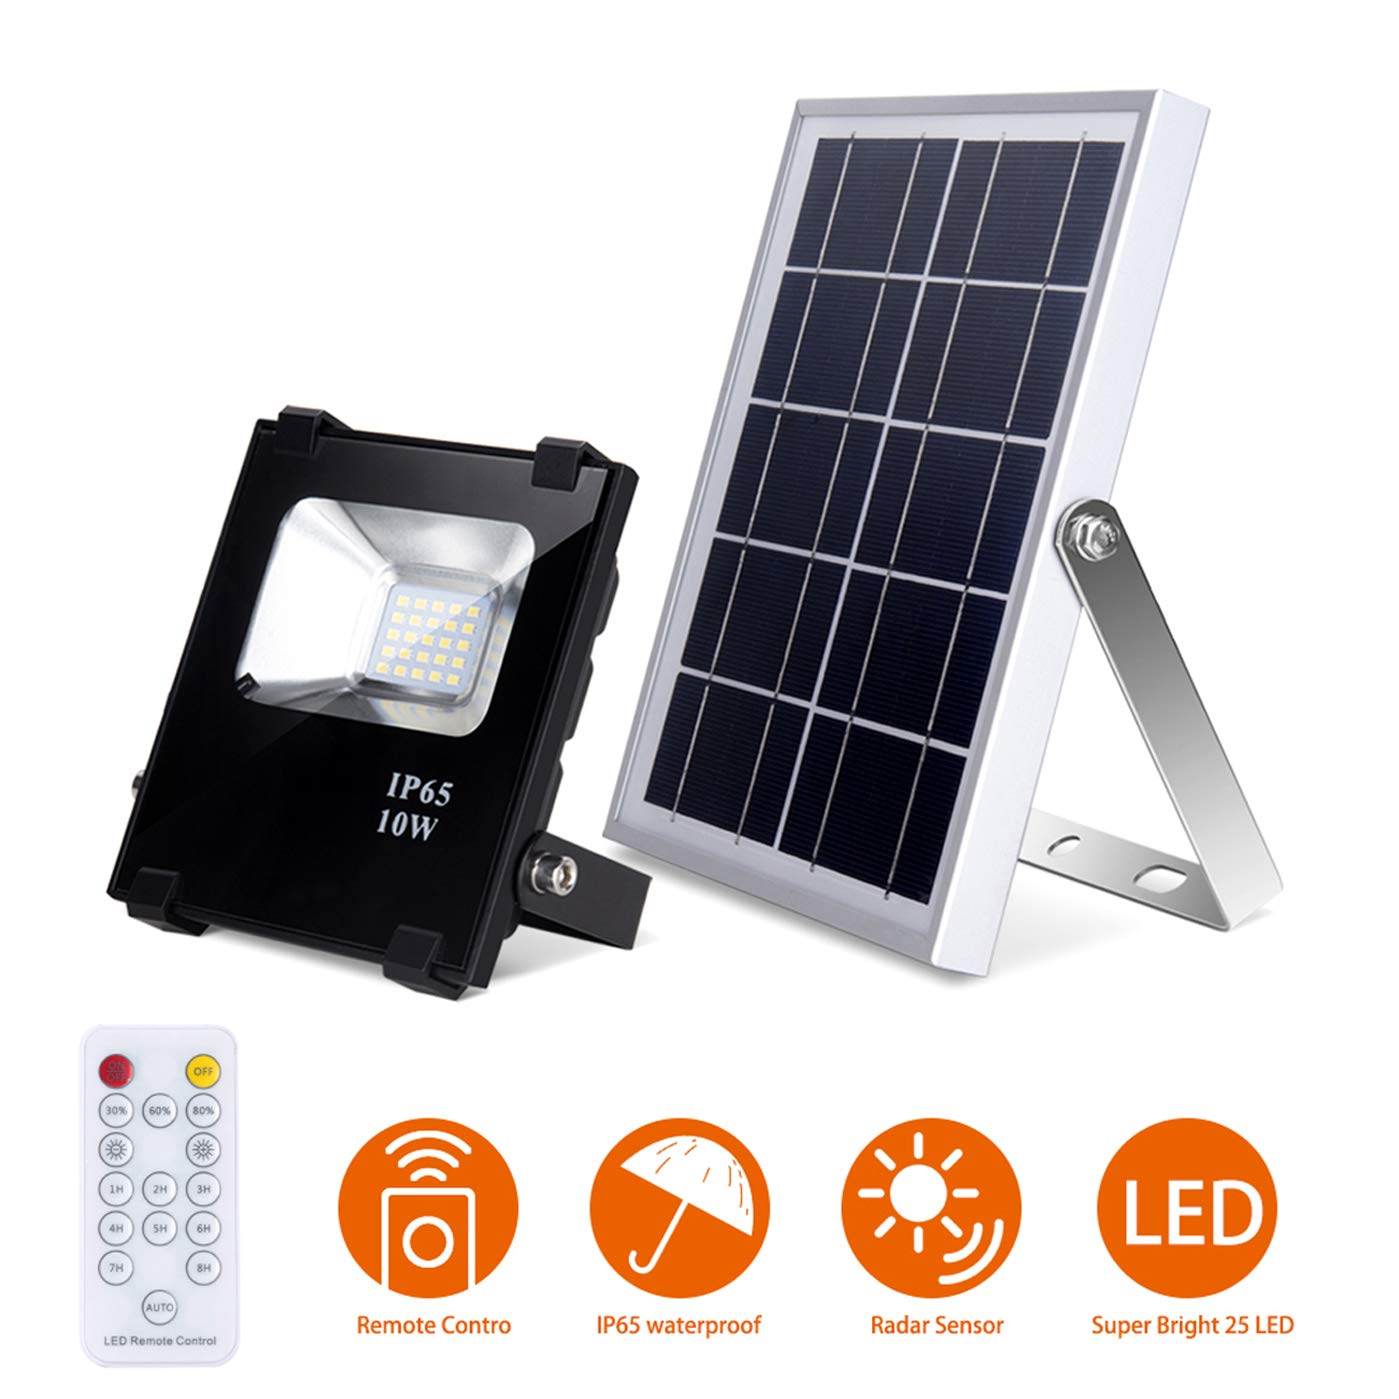 Solar Flood Lights with Remote LED Solar Light 25 LEDs Waterproof Solar Security Lights Dusk to Dawn Outdoor Lighting Solar Panel Light for Yard, Garden, Patio by Richarm